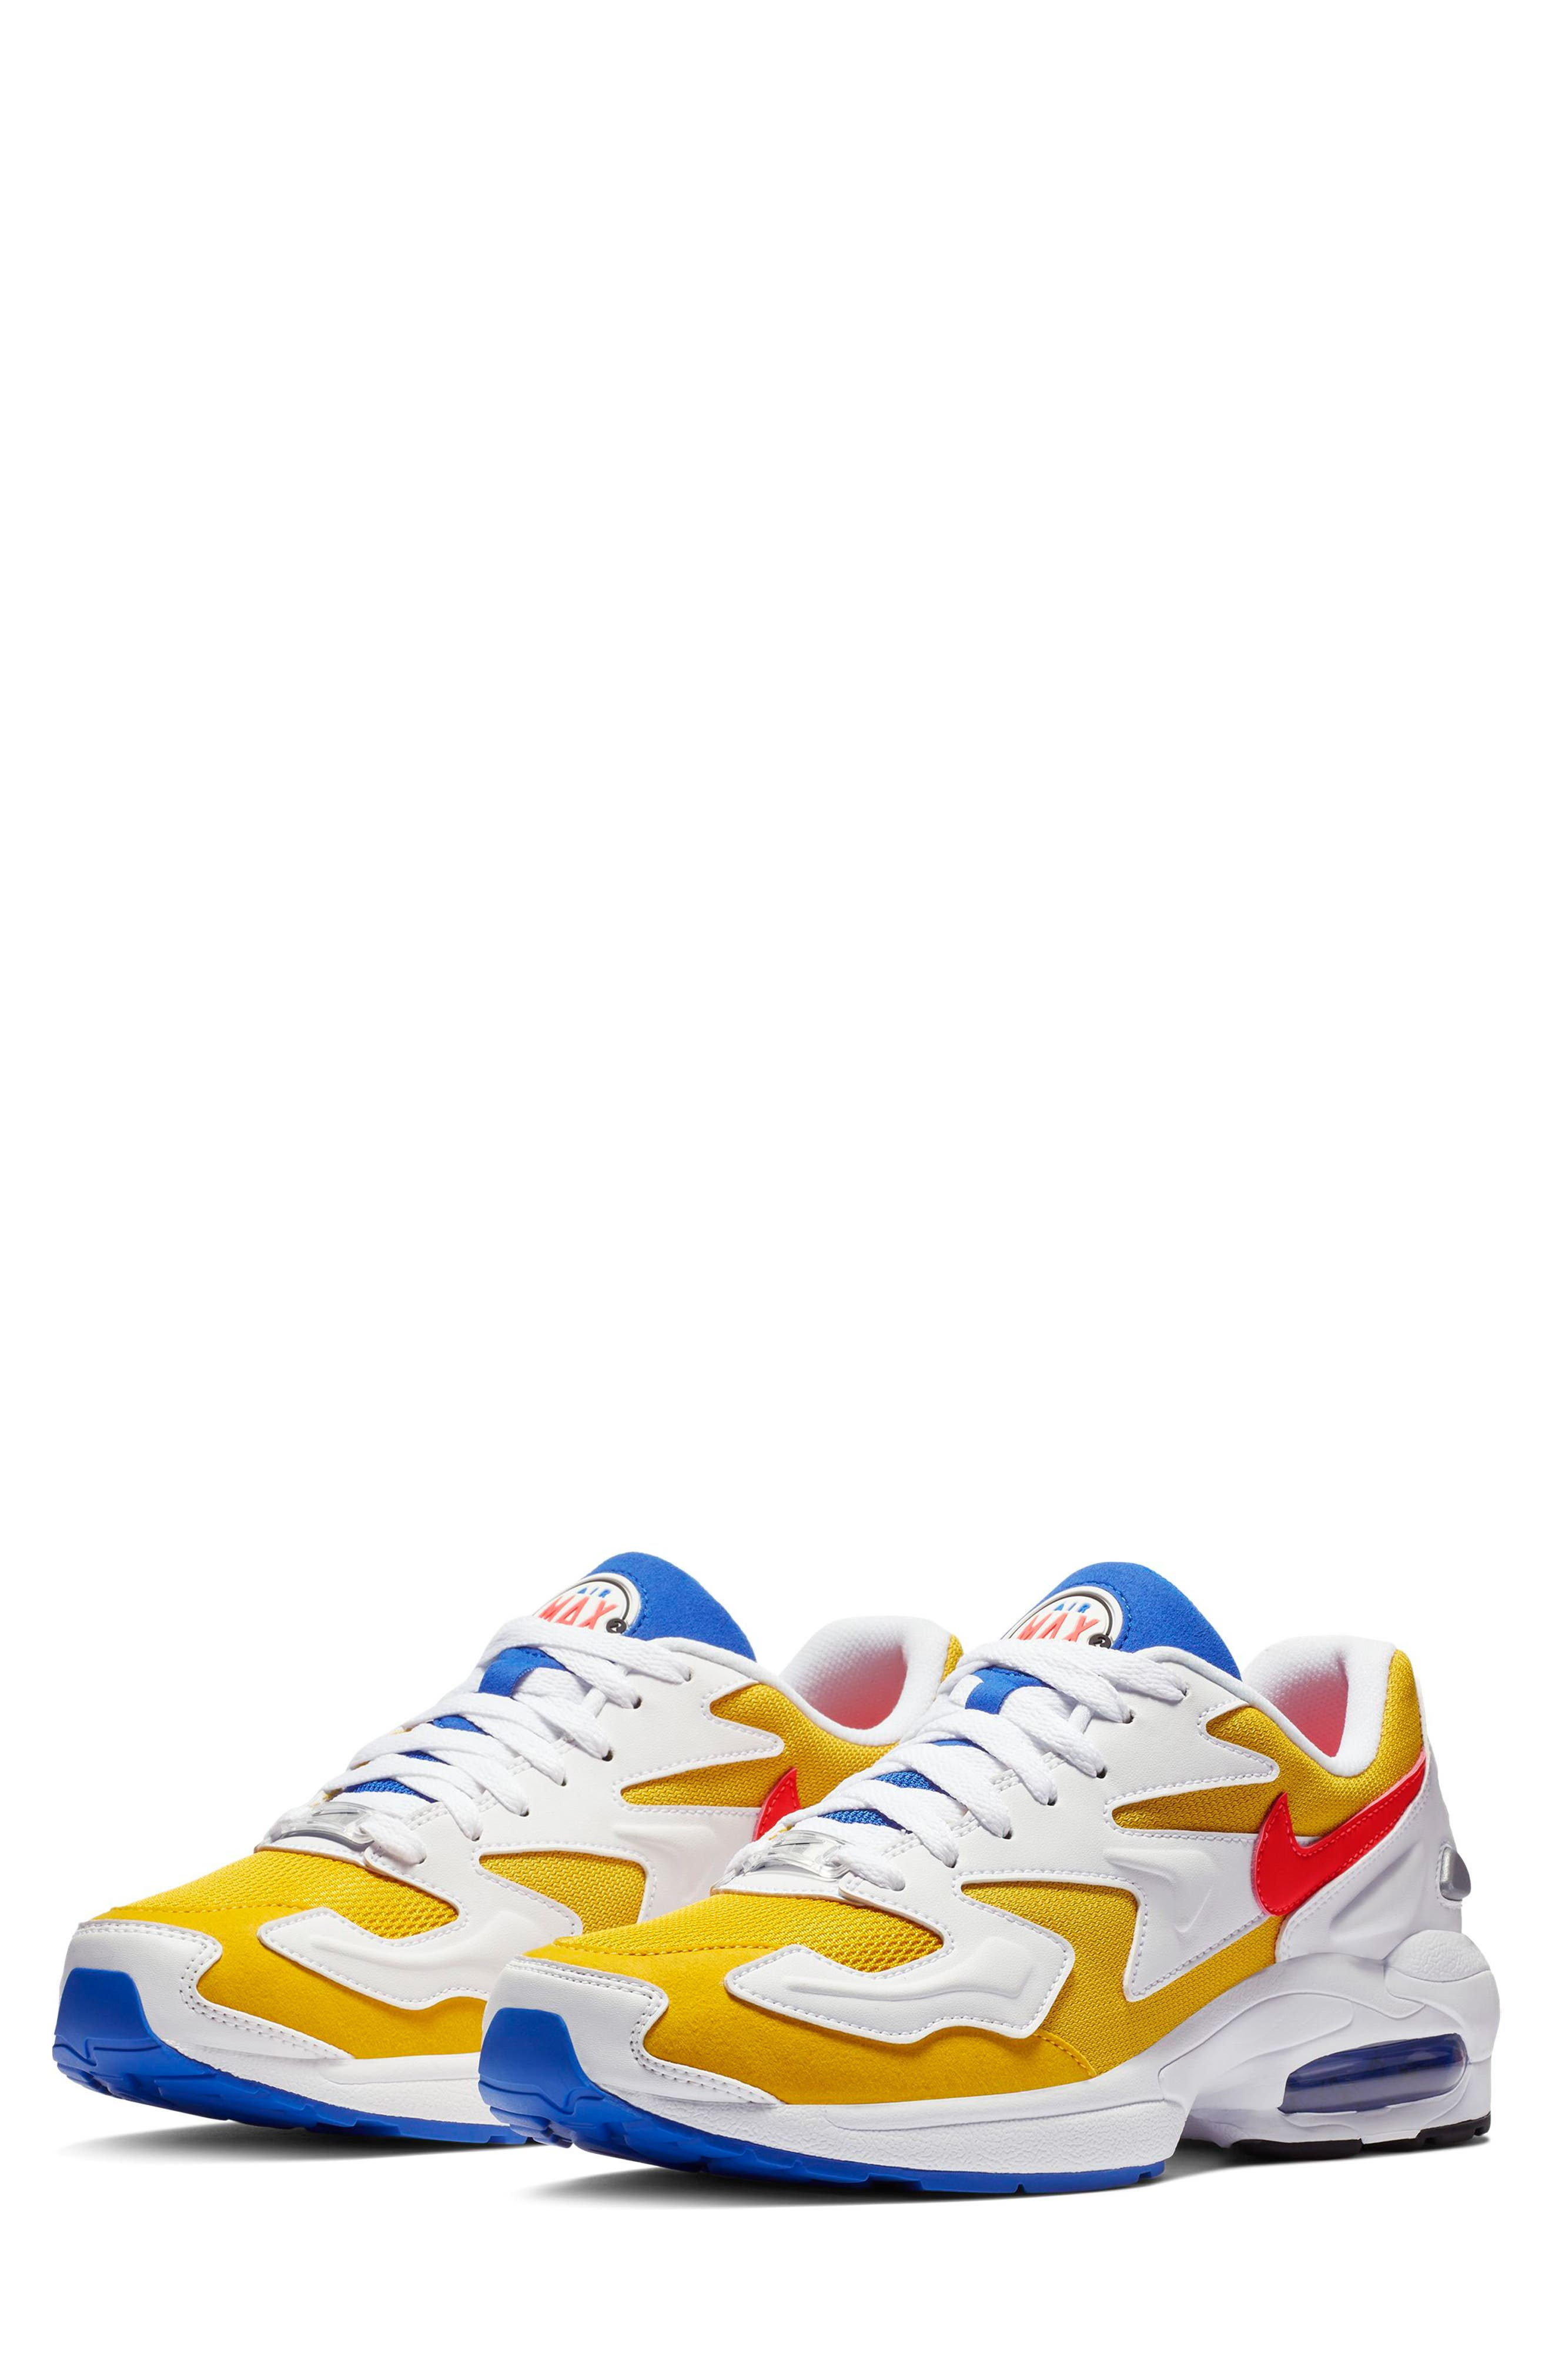 NIKE, Air Max2 Light Sneaker, Main thumbnail 1, color, GOLD CRIMSON/ BLUE